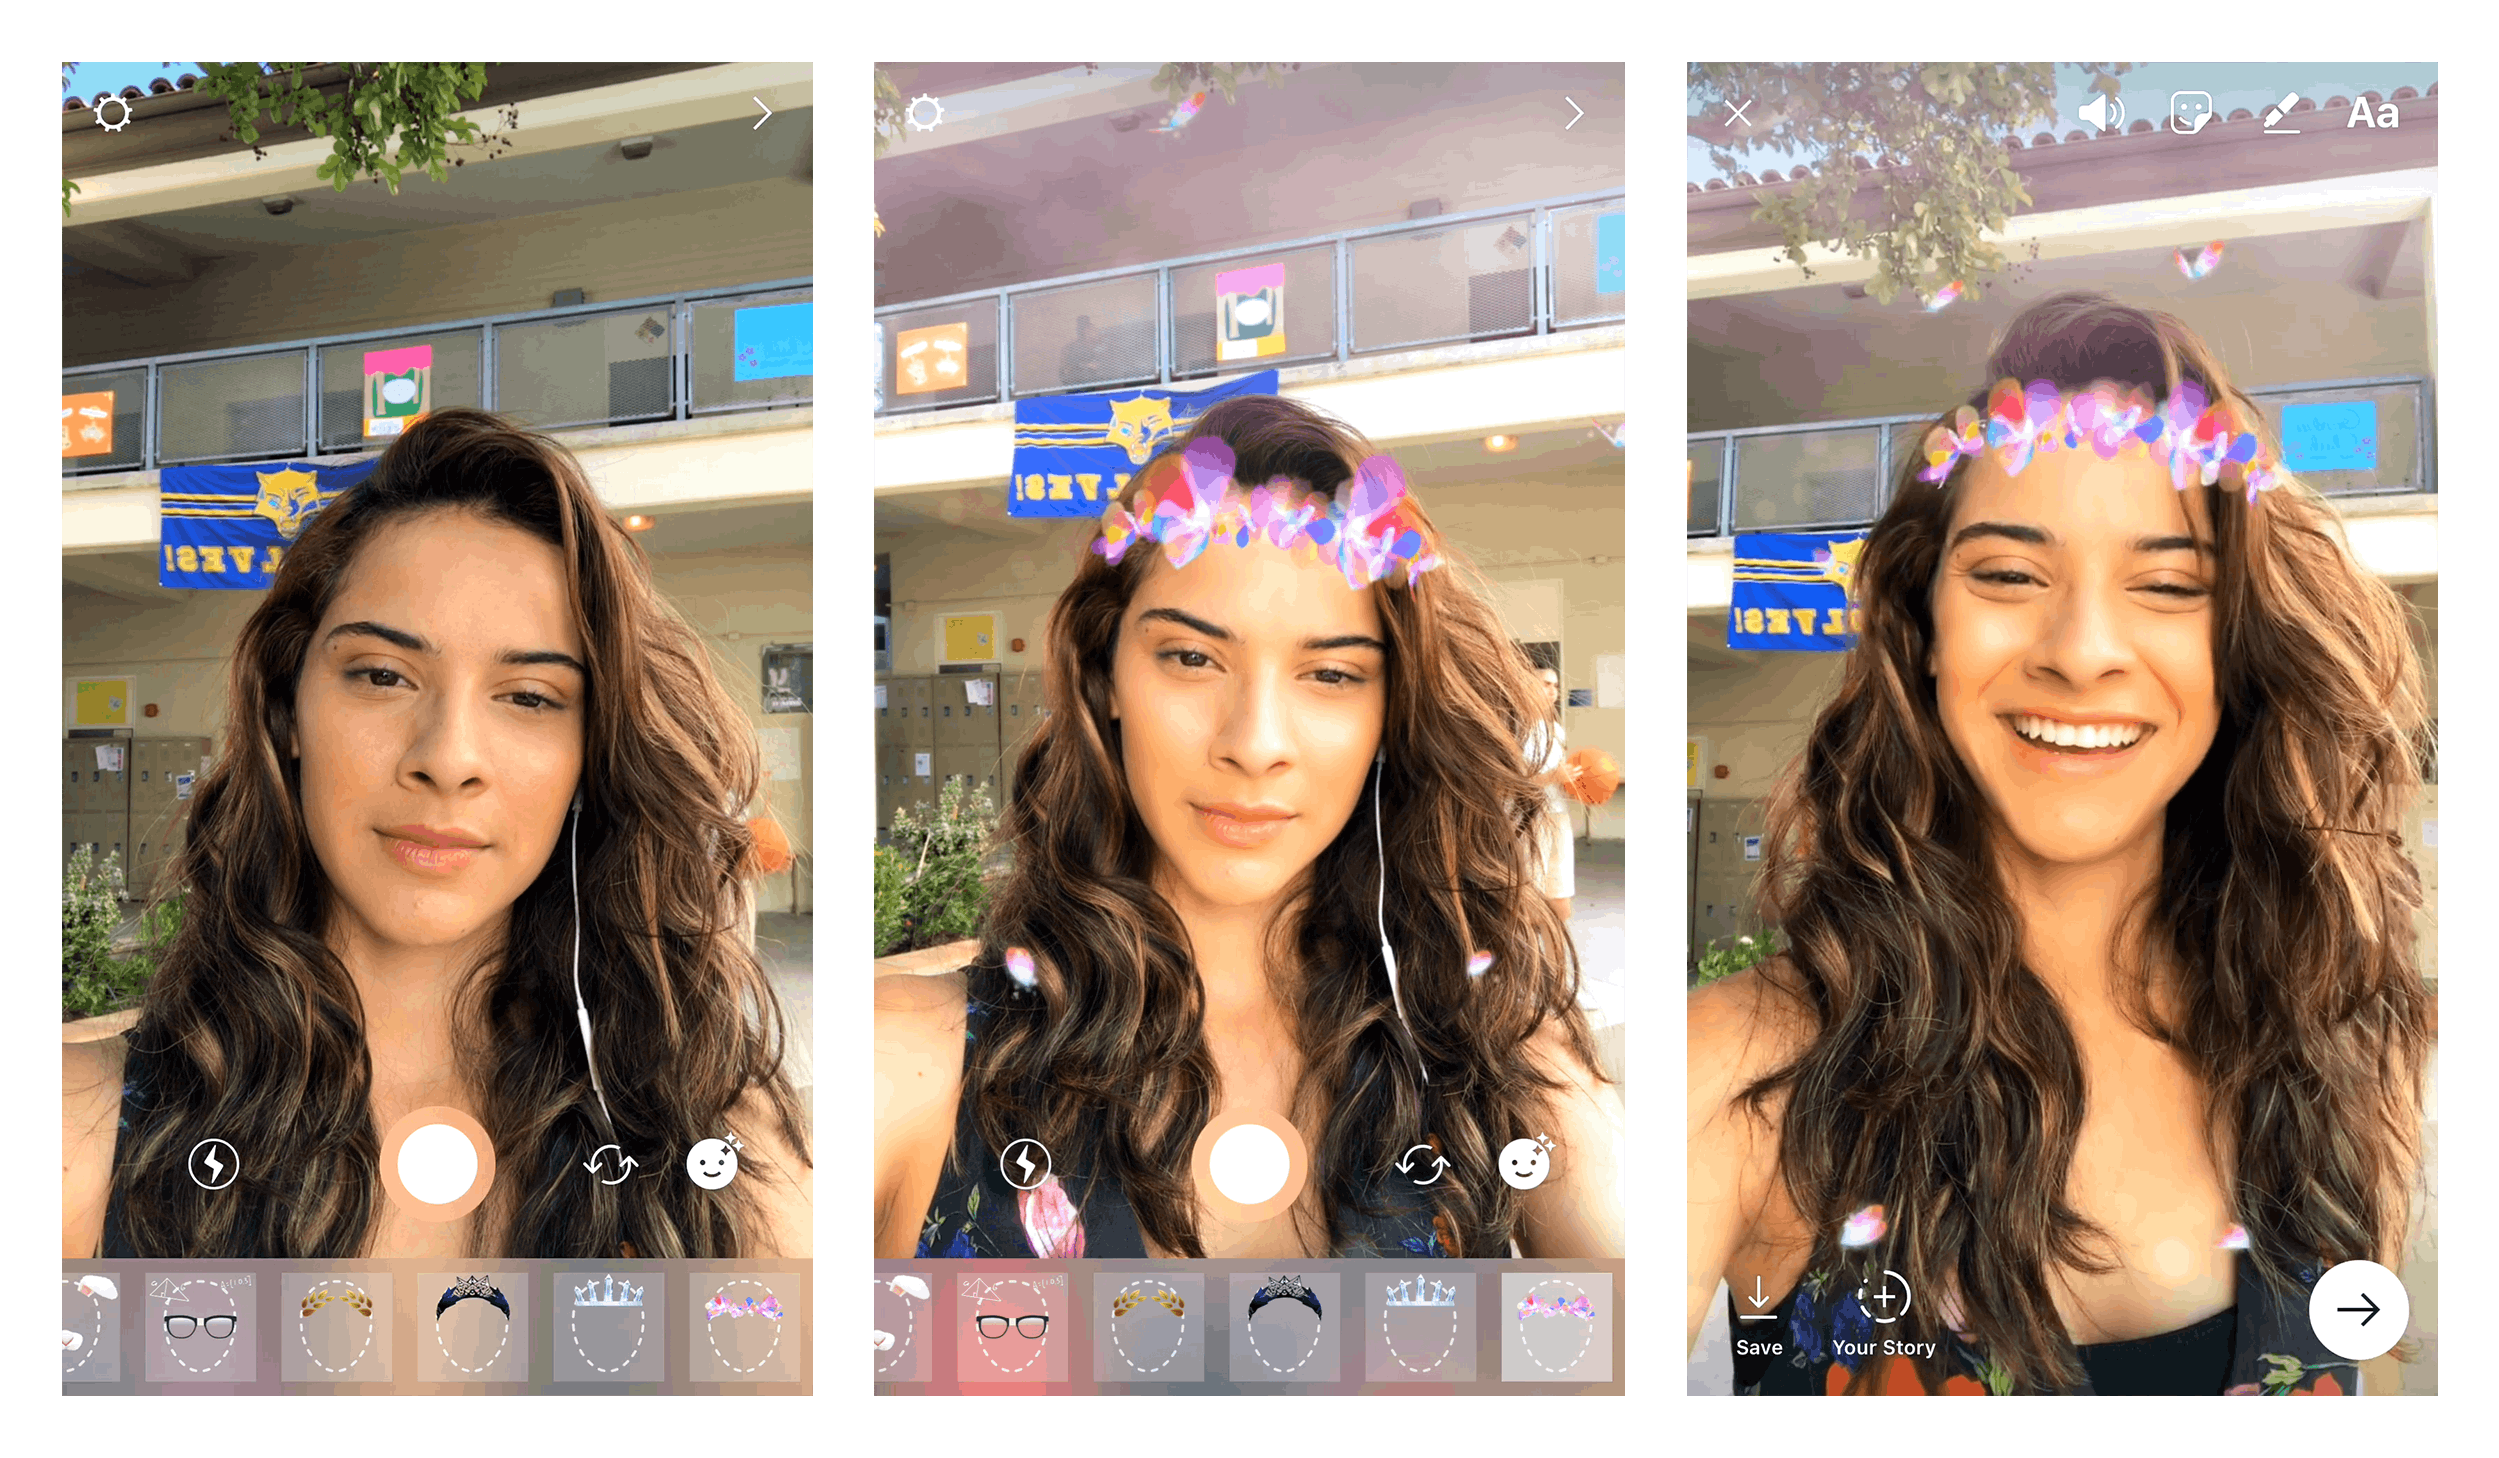 'Face Filters' and other features added to Instagram